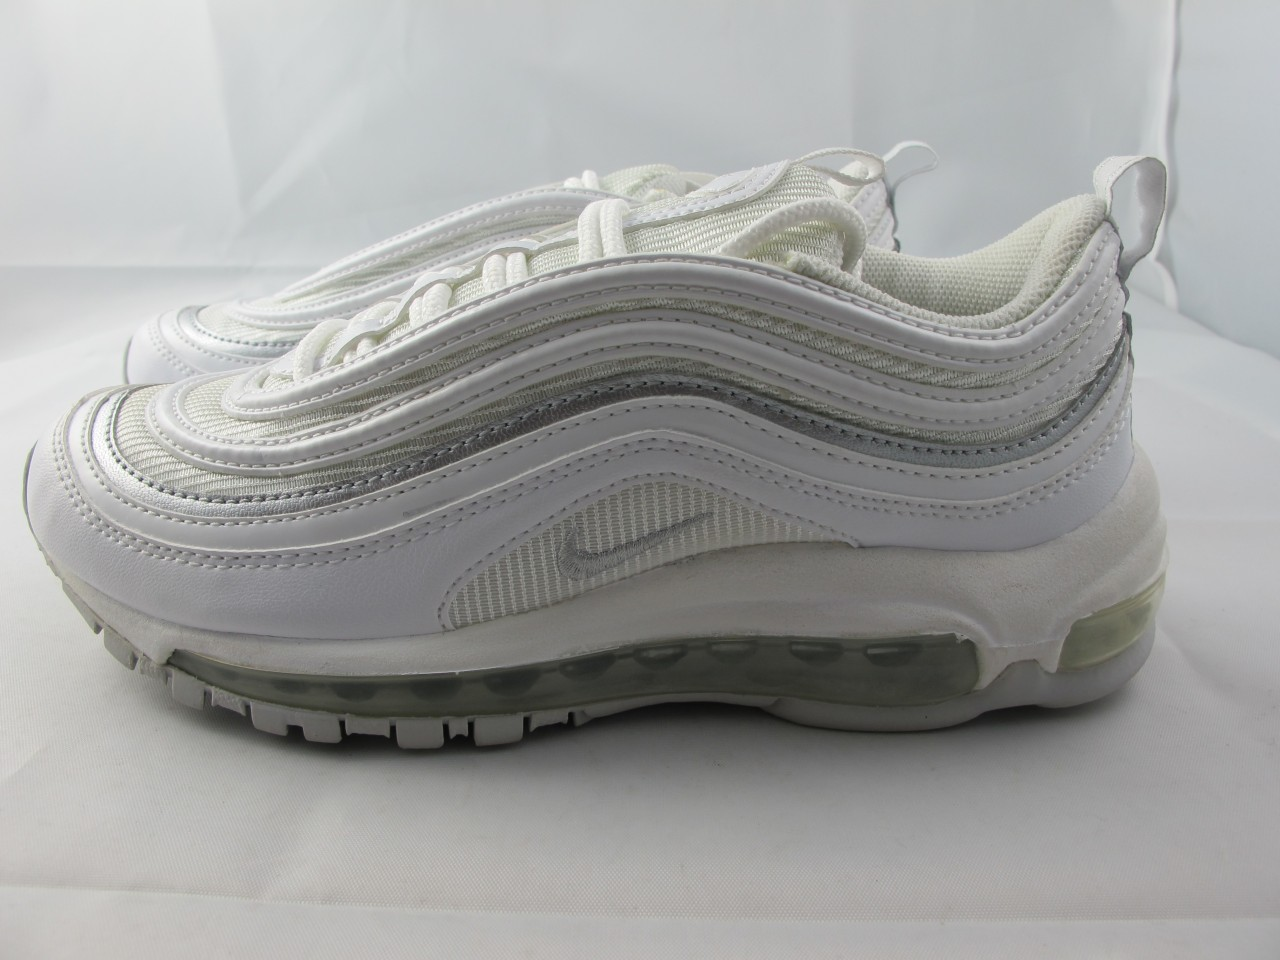 073cded57c3fb9 Nike Air Max 97 Country Camo Germany AJ2614 204